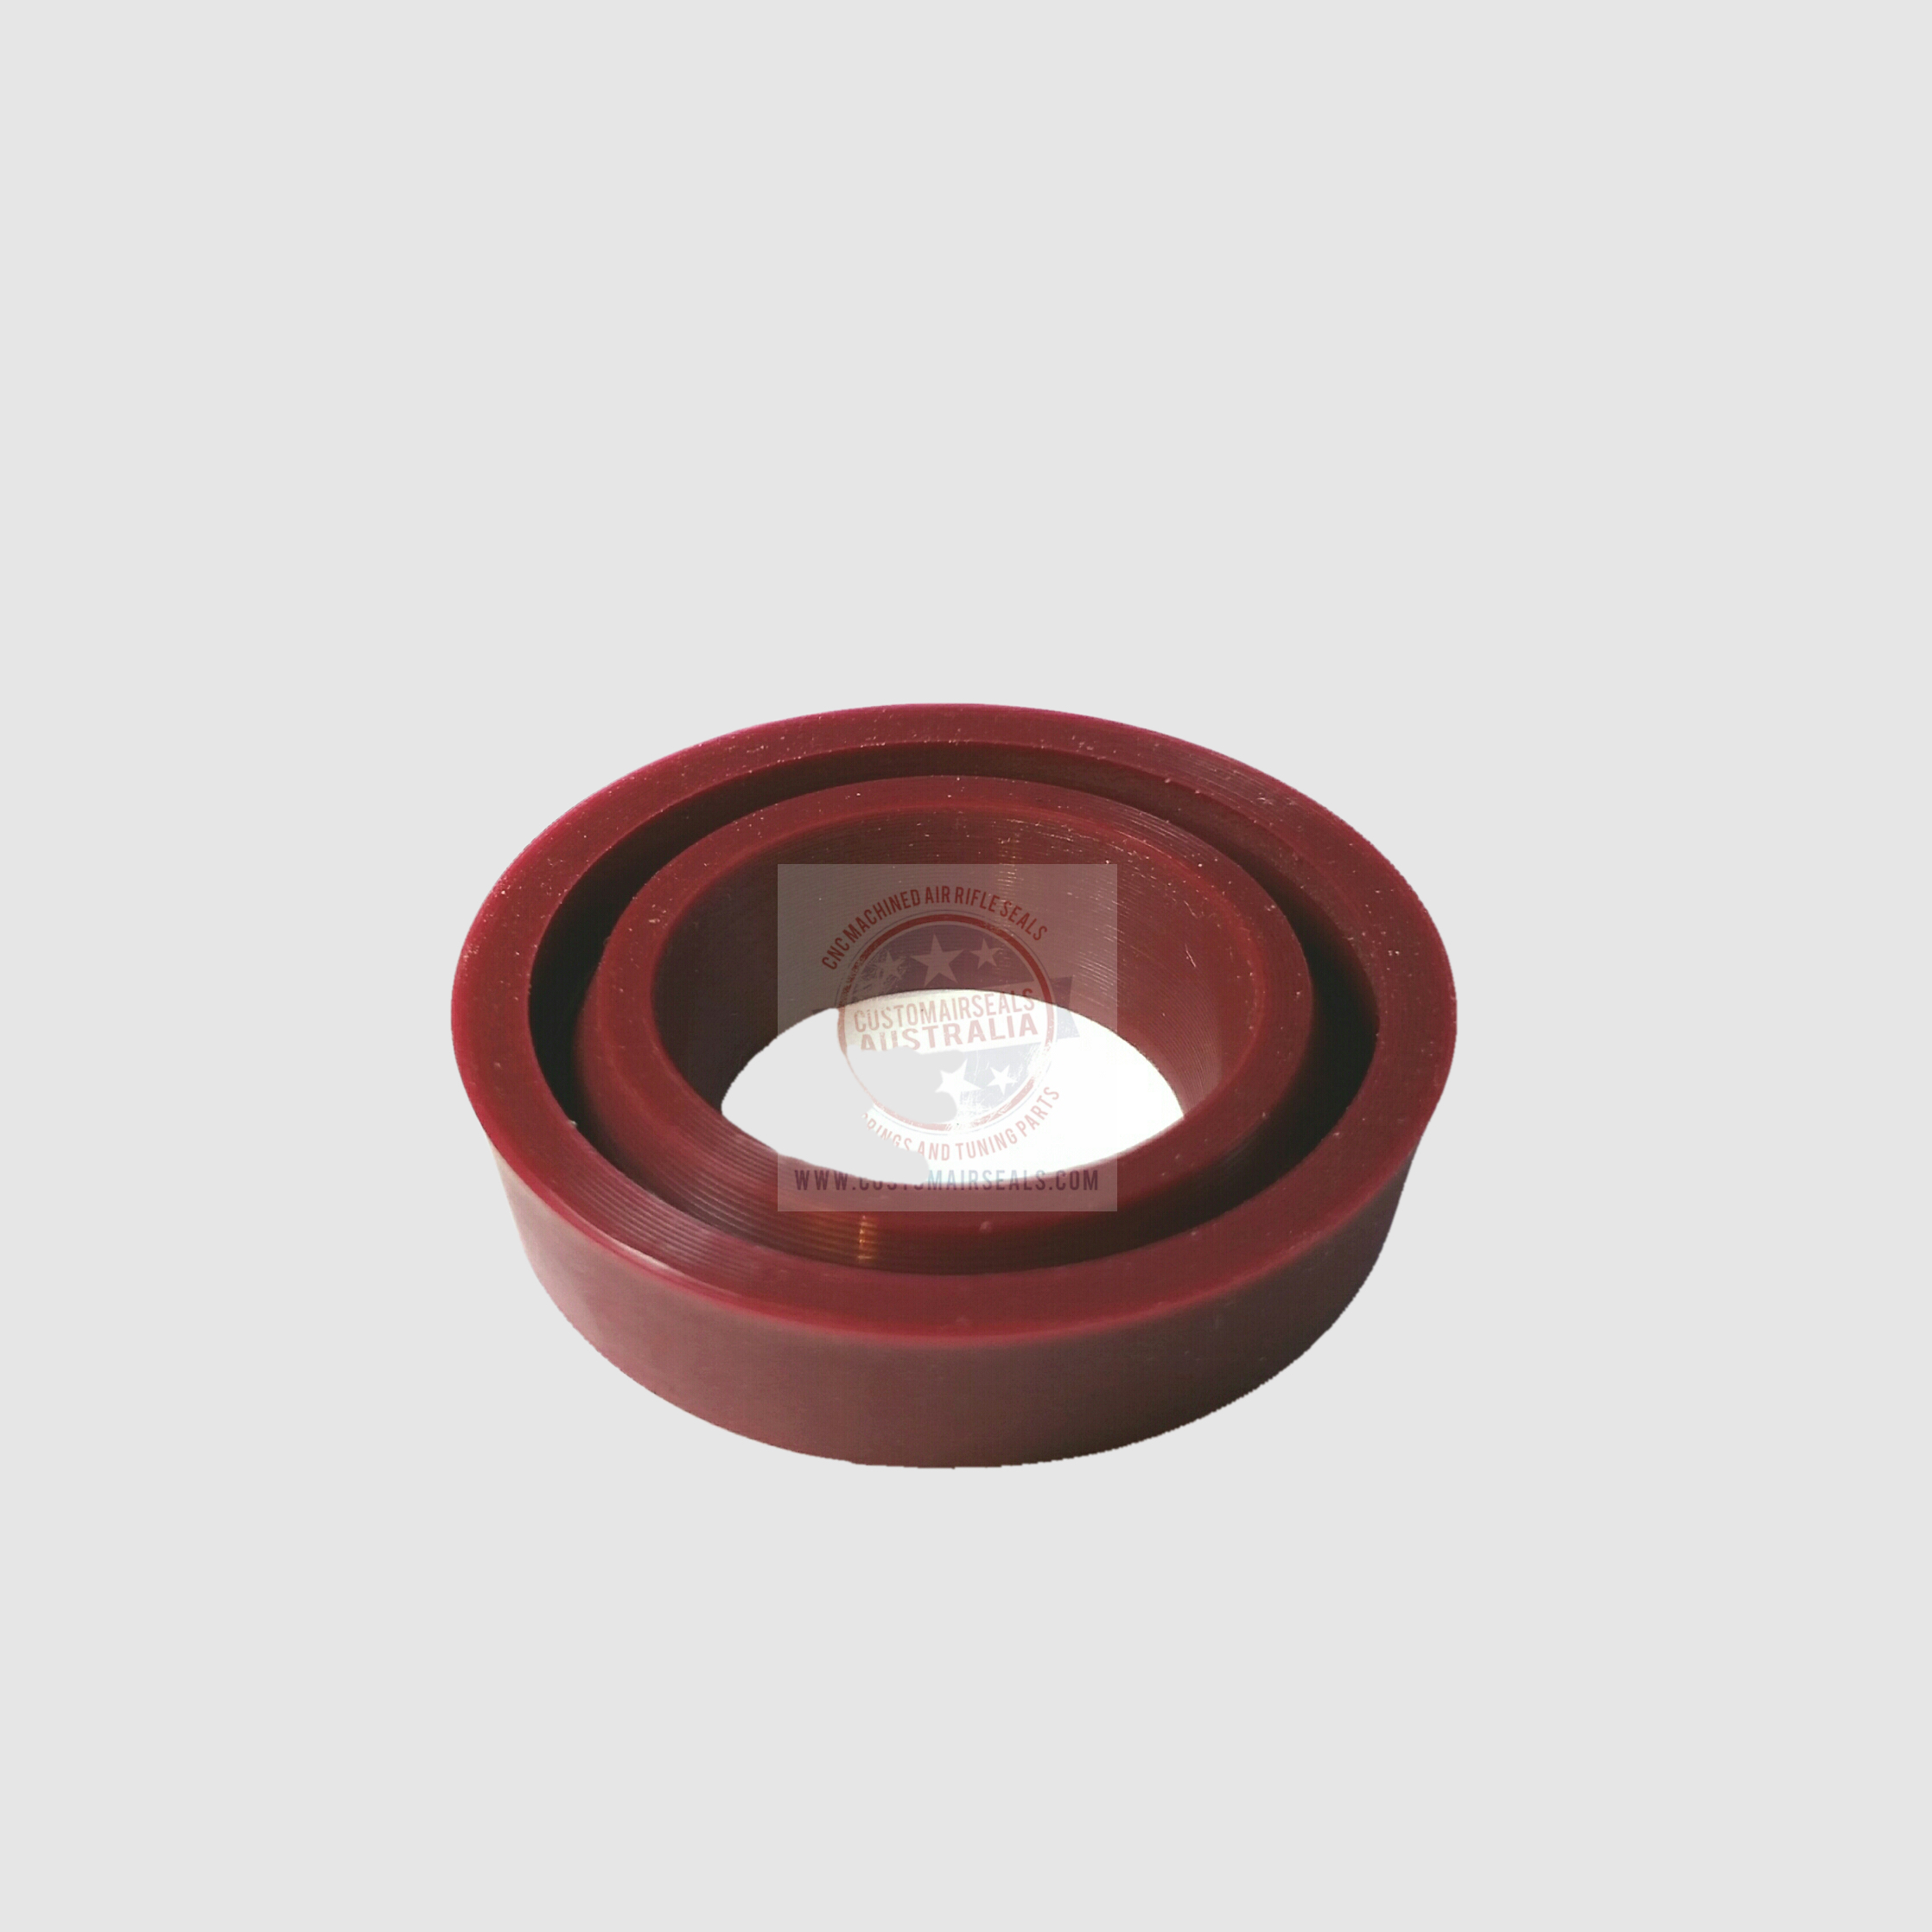 GAMO 25MM AIR RIFLE POWER SEAL - Customairseals